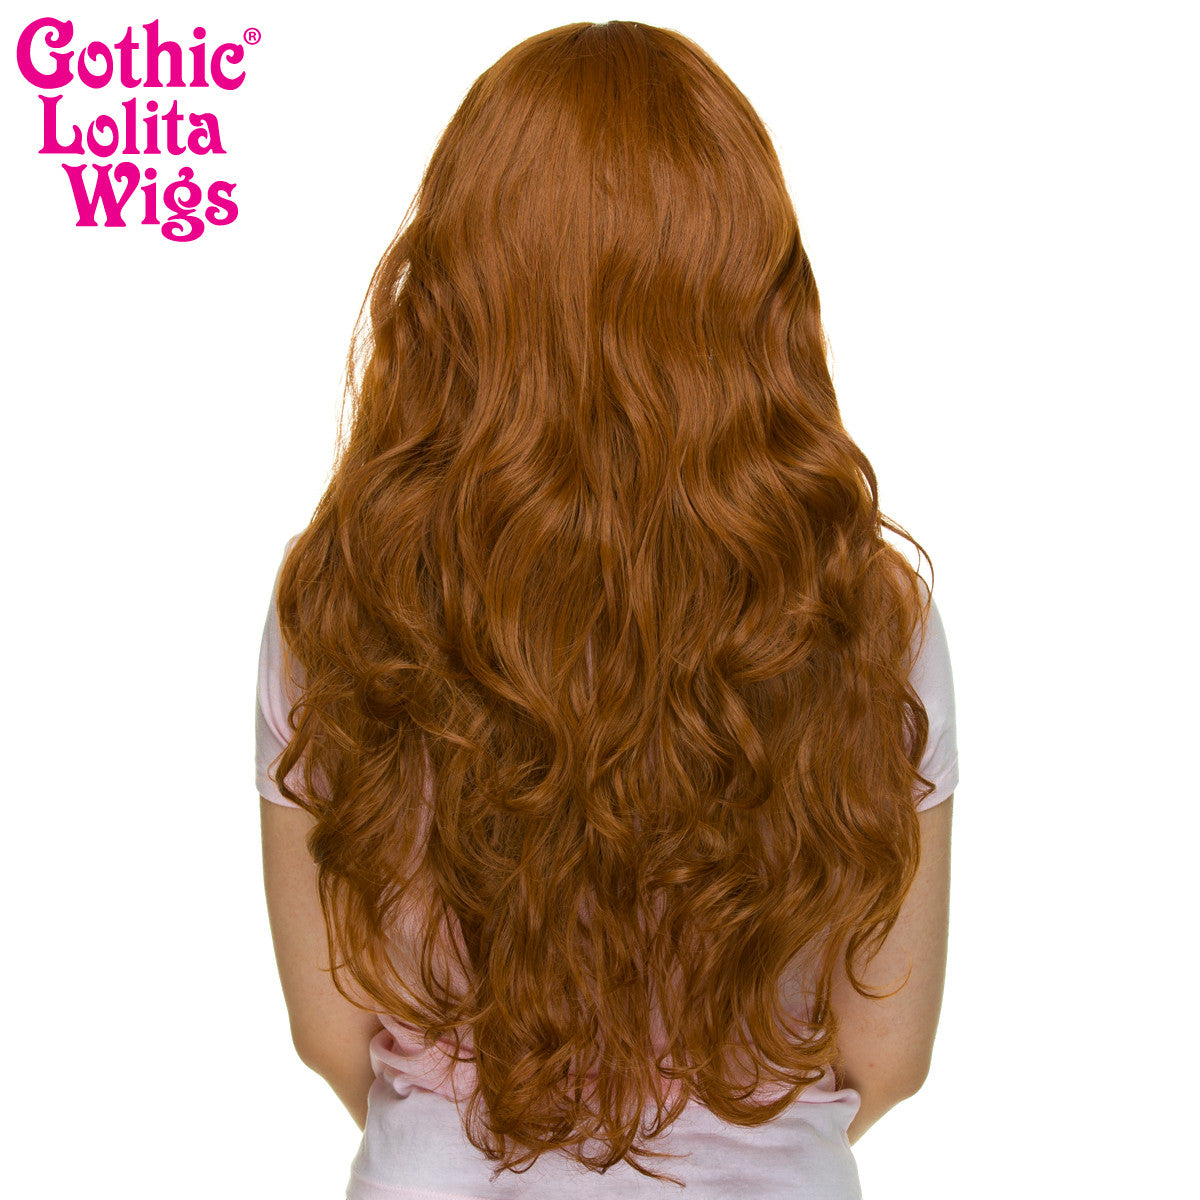 Gothic Lolita Wigs® <br>Ulzzang Collection - Caramel Brown Mix -00410